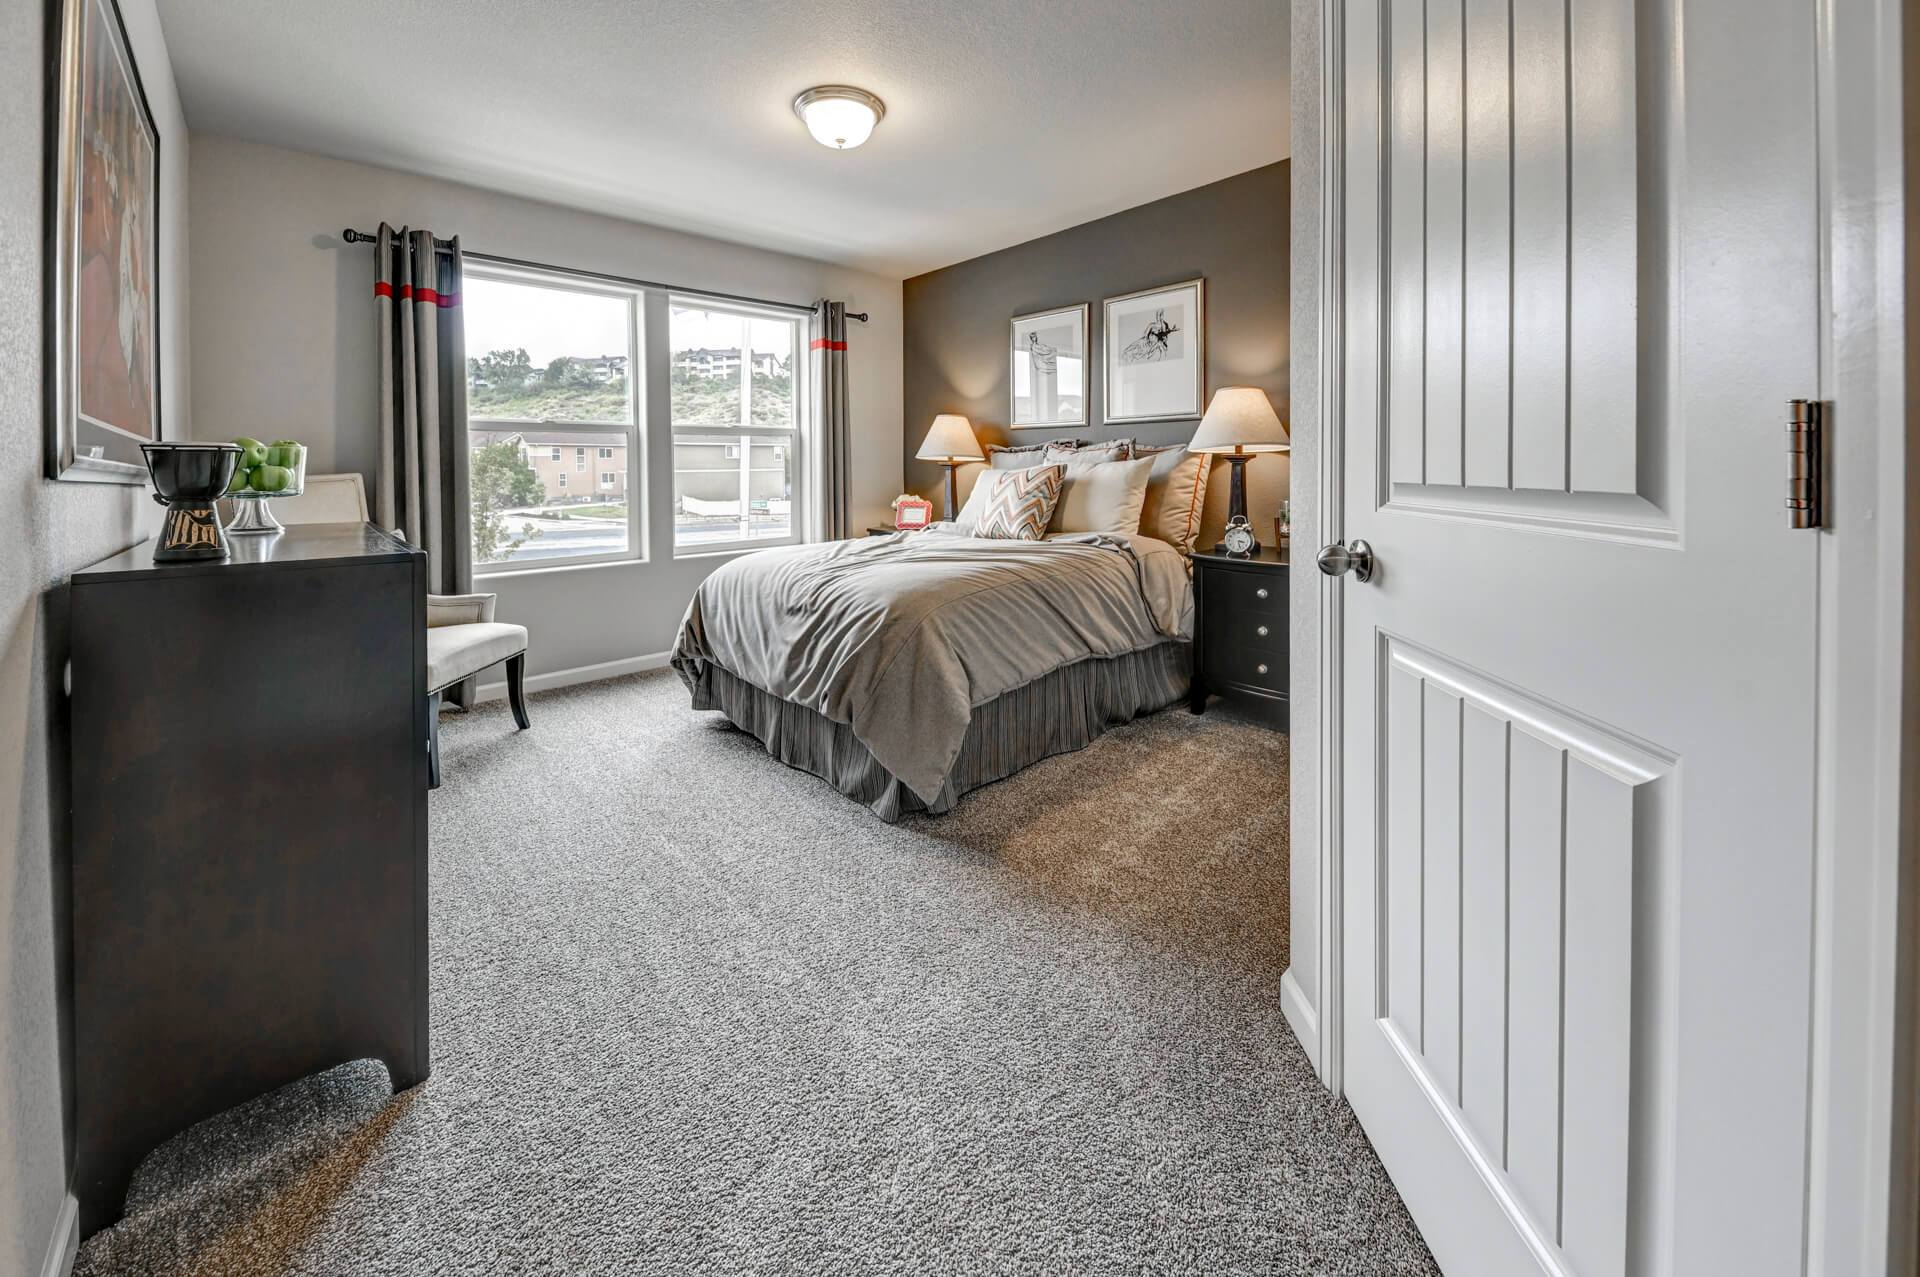 Bedroom featured in The Wexford By Challenger Homes in Colorado Springs, CO